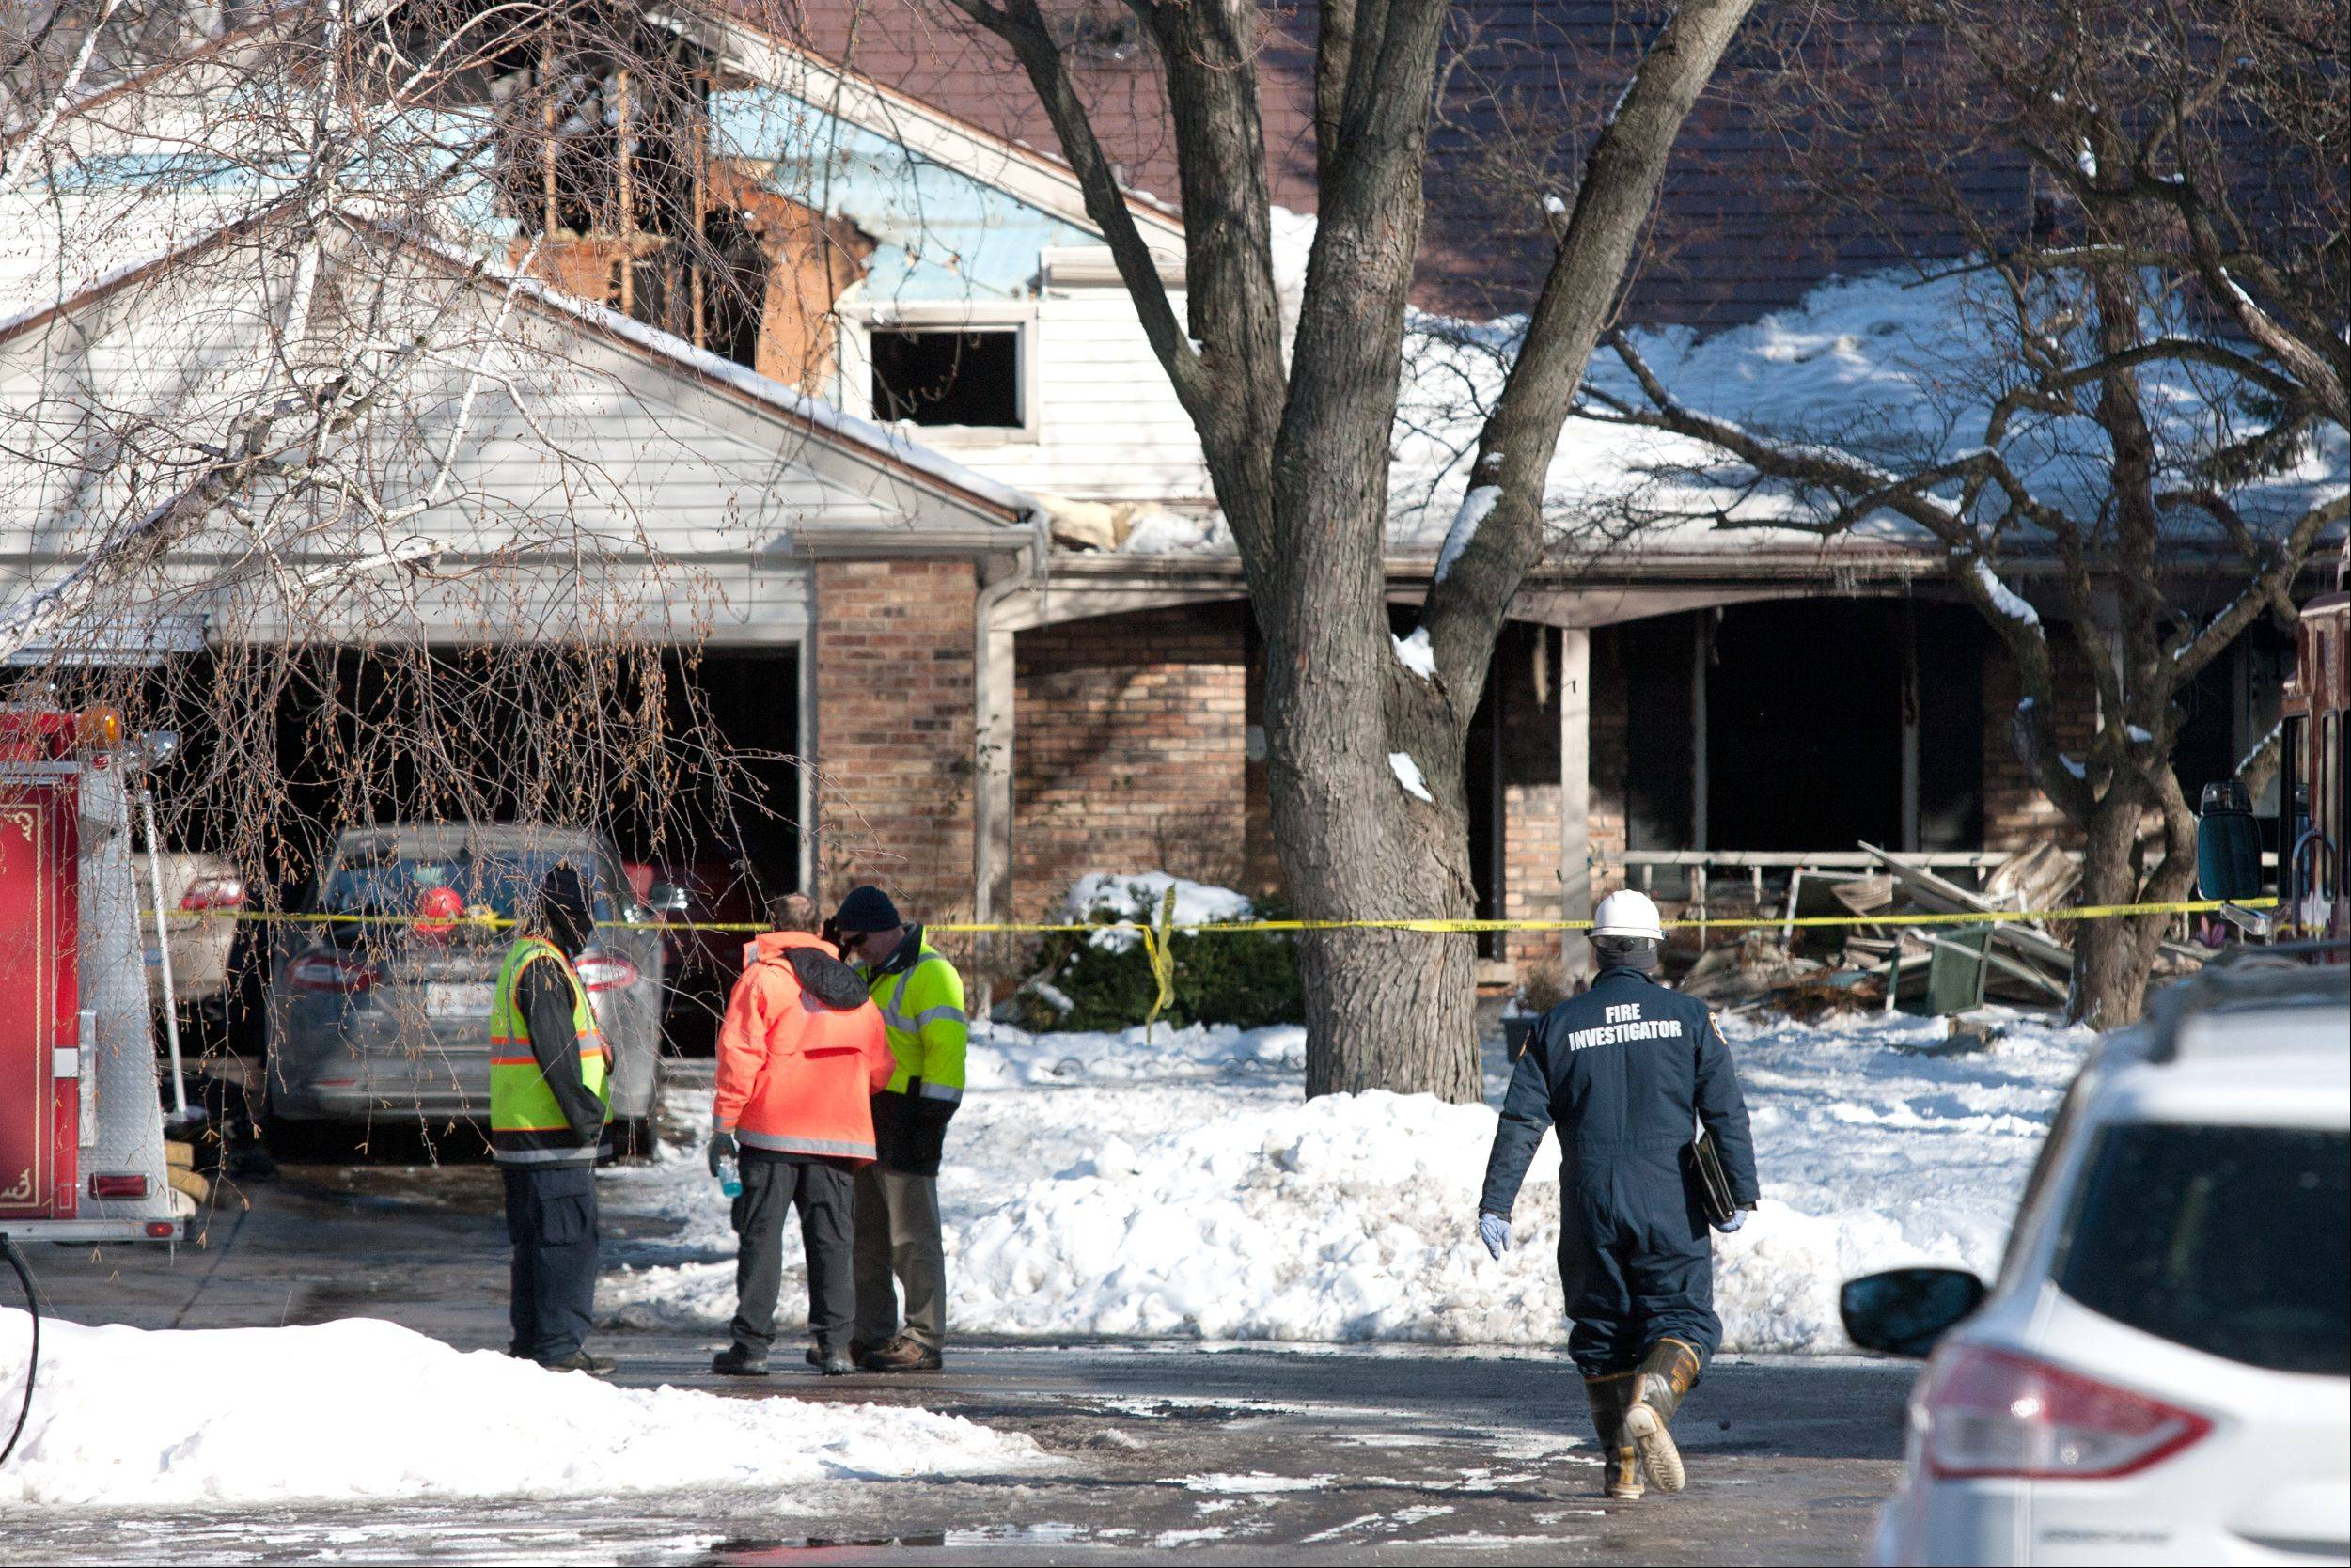 An investigation continues into a Dec. 18 house fire on the 1200 block of Field Court in Naperville, where a 57-year-old man who had brain cancer and his 56-year-old wife who was blind perished.